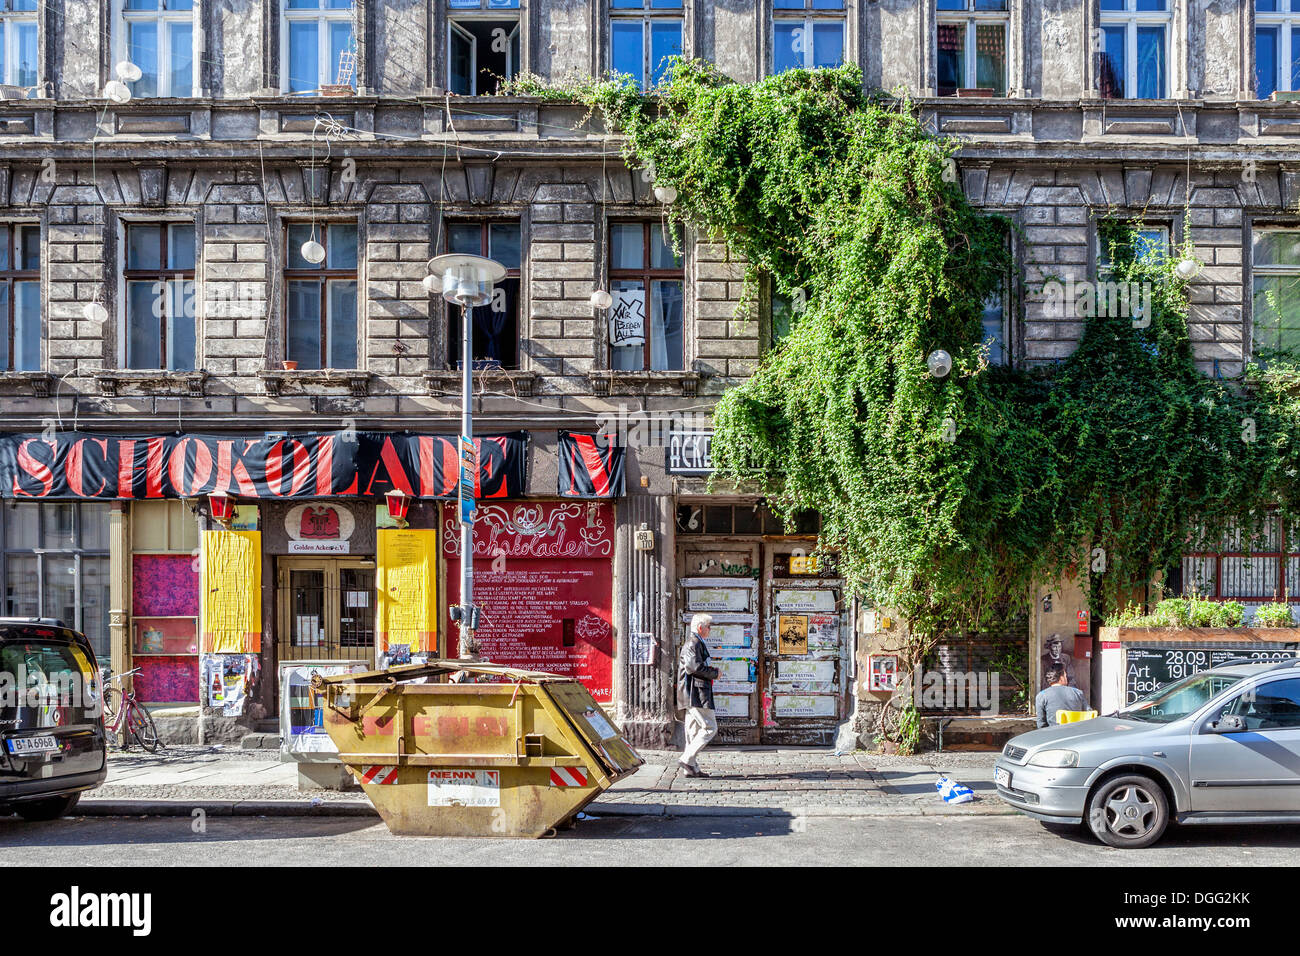 Old decrepit building home to Schokoladen with live music, bands, DJs and artists' studios in Ackerstrasse, Mitte, Berlin - Stock Image